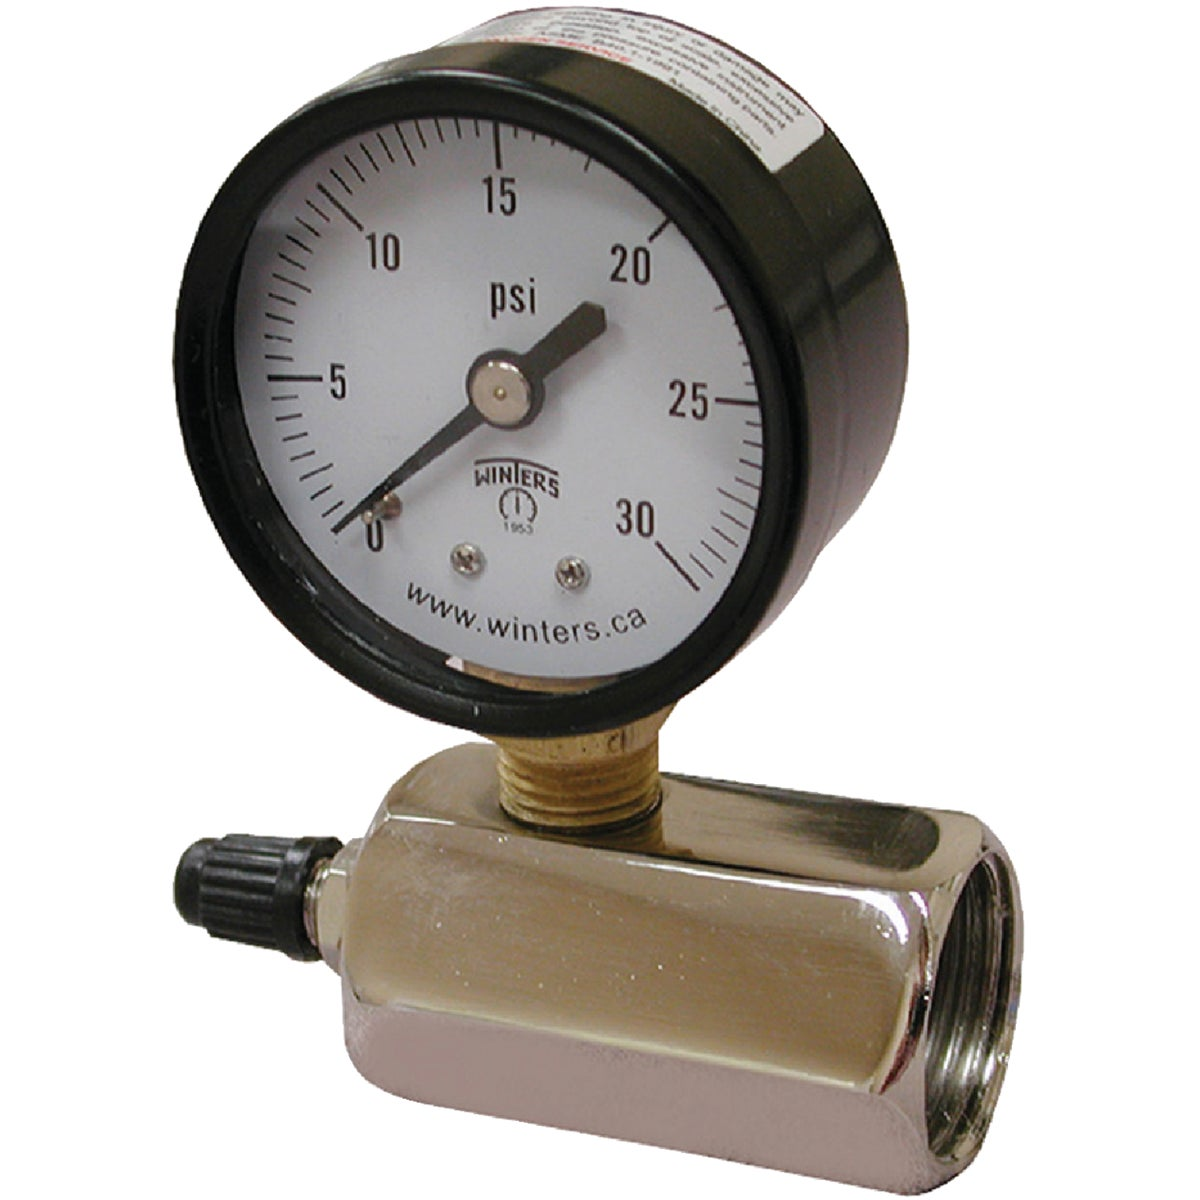 GAS TEST GAUGE - G64-030 by Jones Stephens Corp